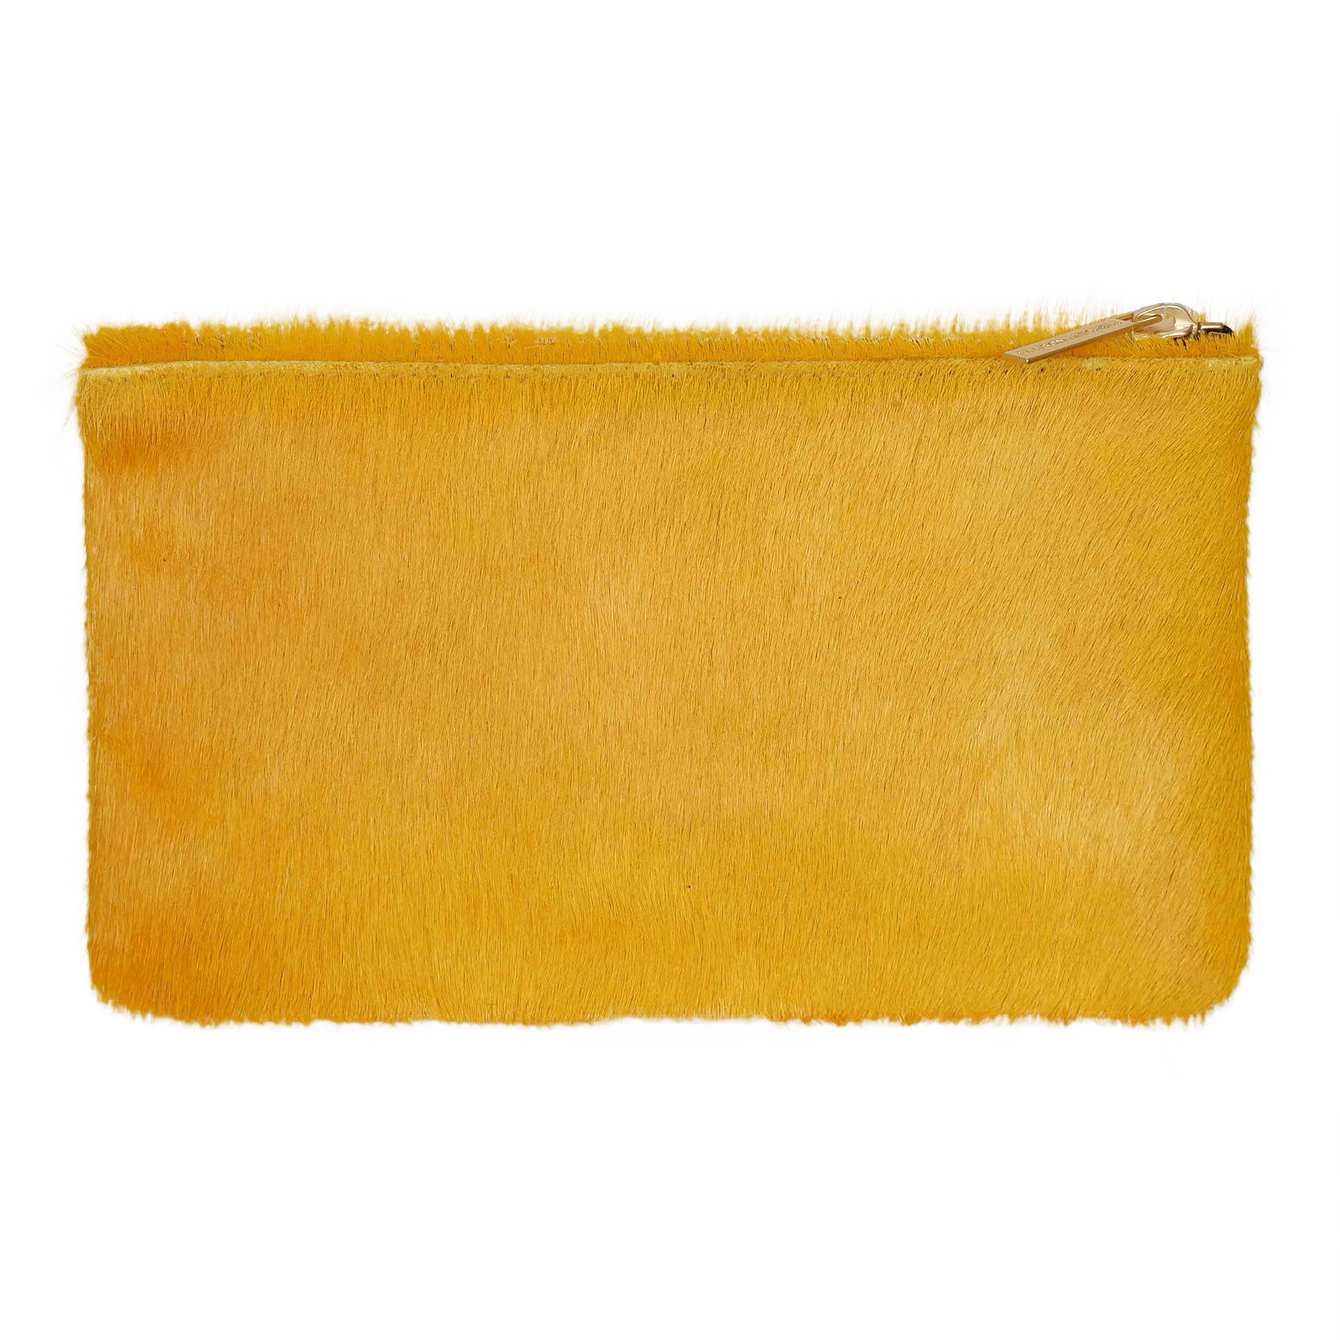 Genuine Calf Hair Zip Pouch Clutch in Marigold-Women - Accessories - Clutches-ALLISON MITCHELL-Large-Peccadilly